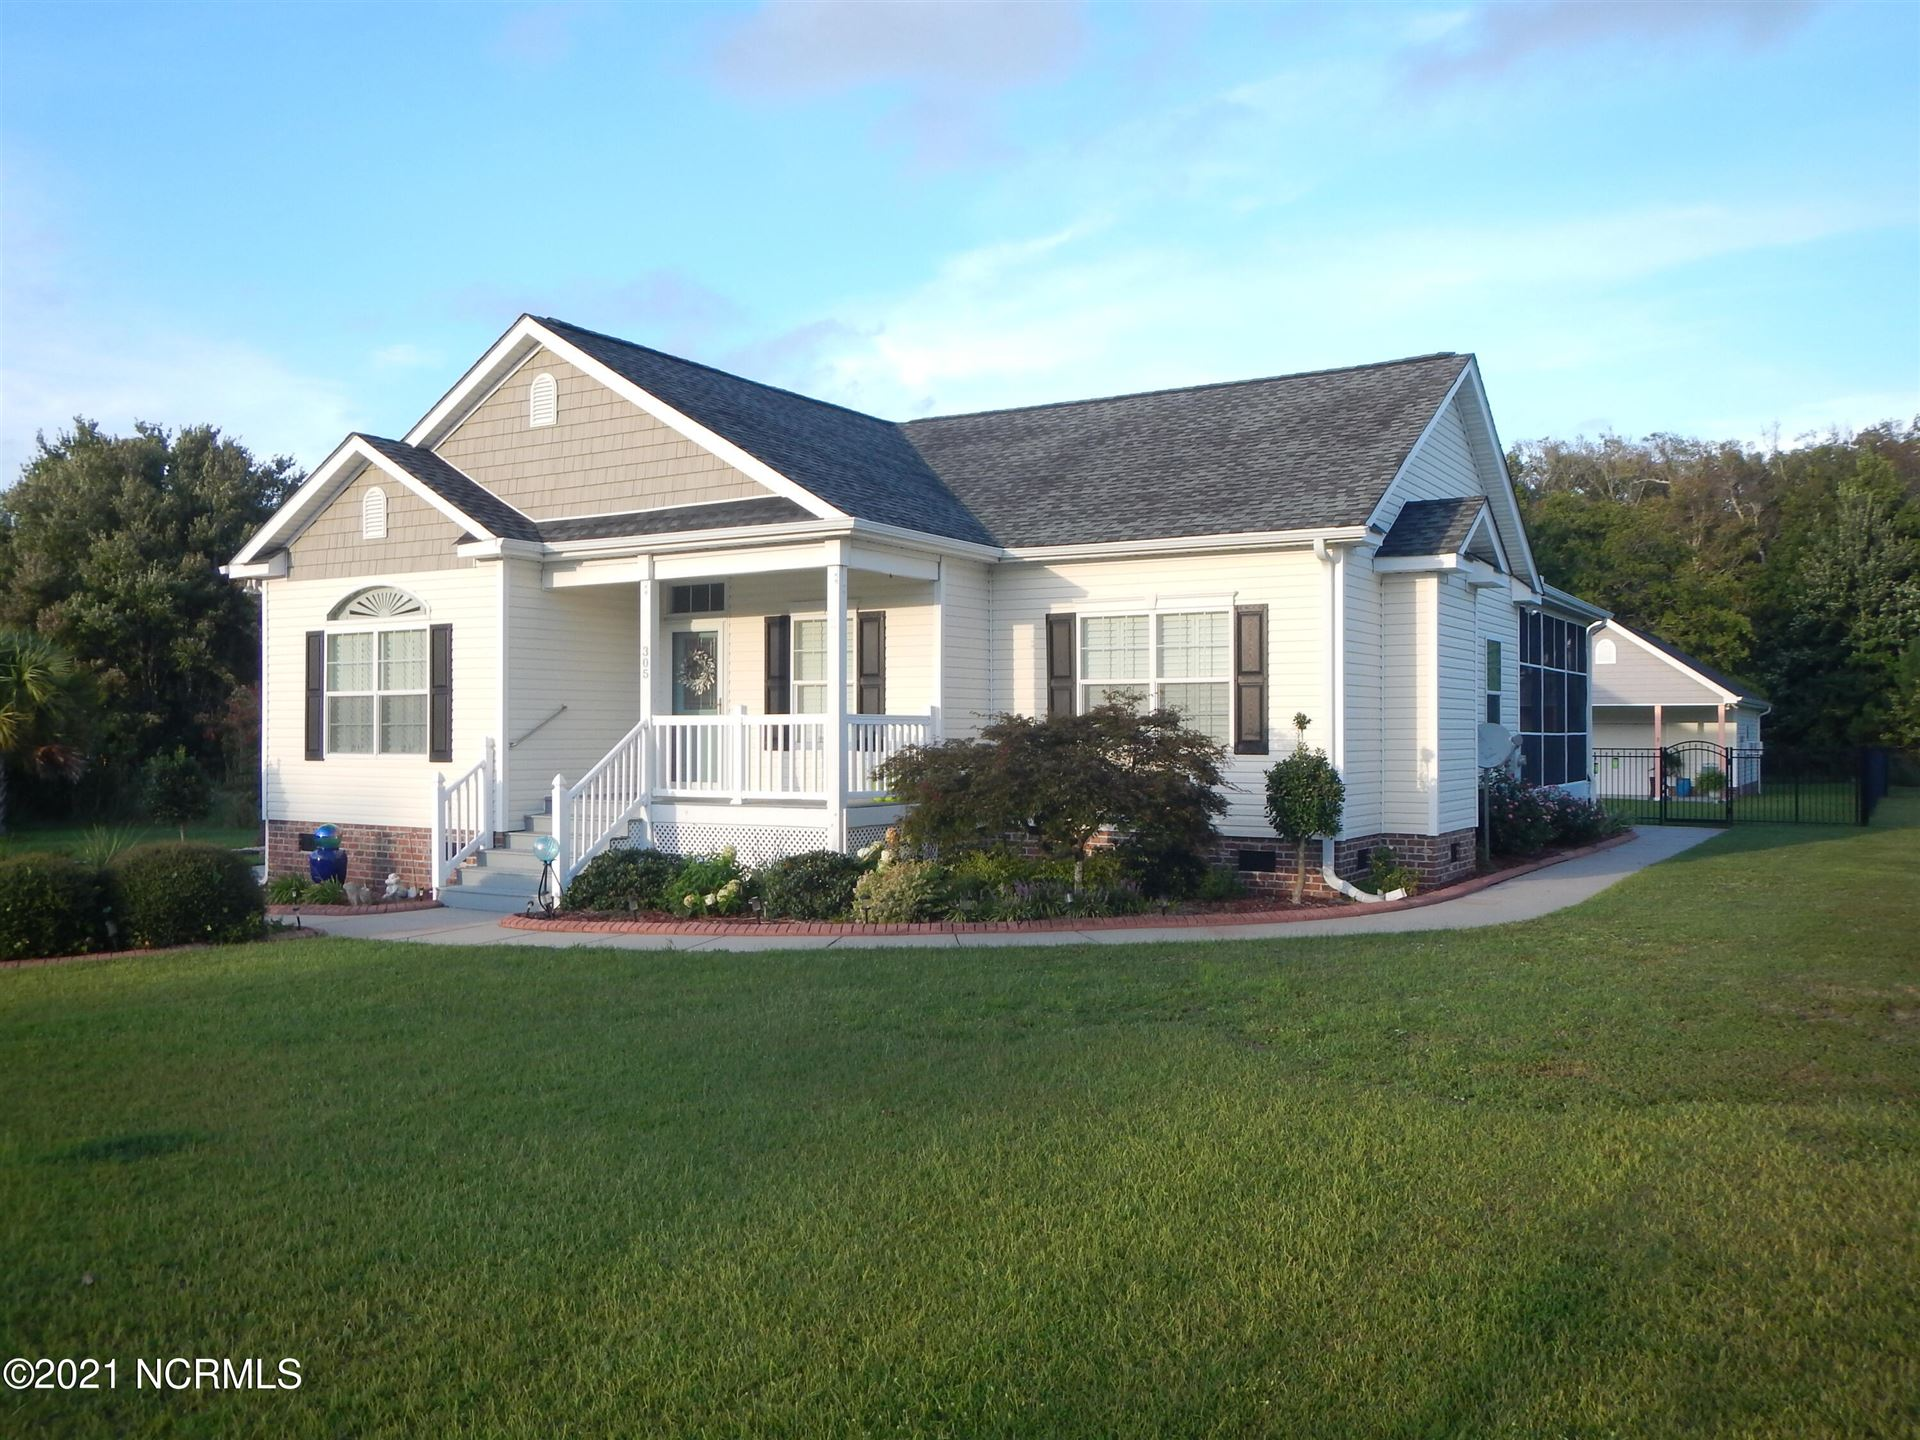 Photo of 305 Clear Water Dr Drive, Newport, NC 28570 (MLS # 100288938)